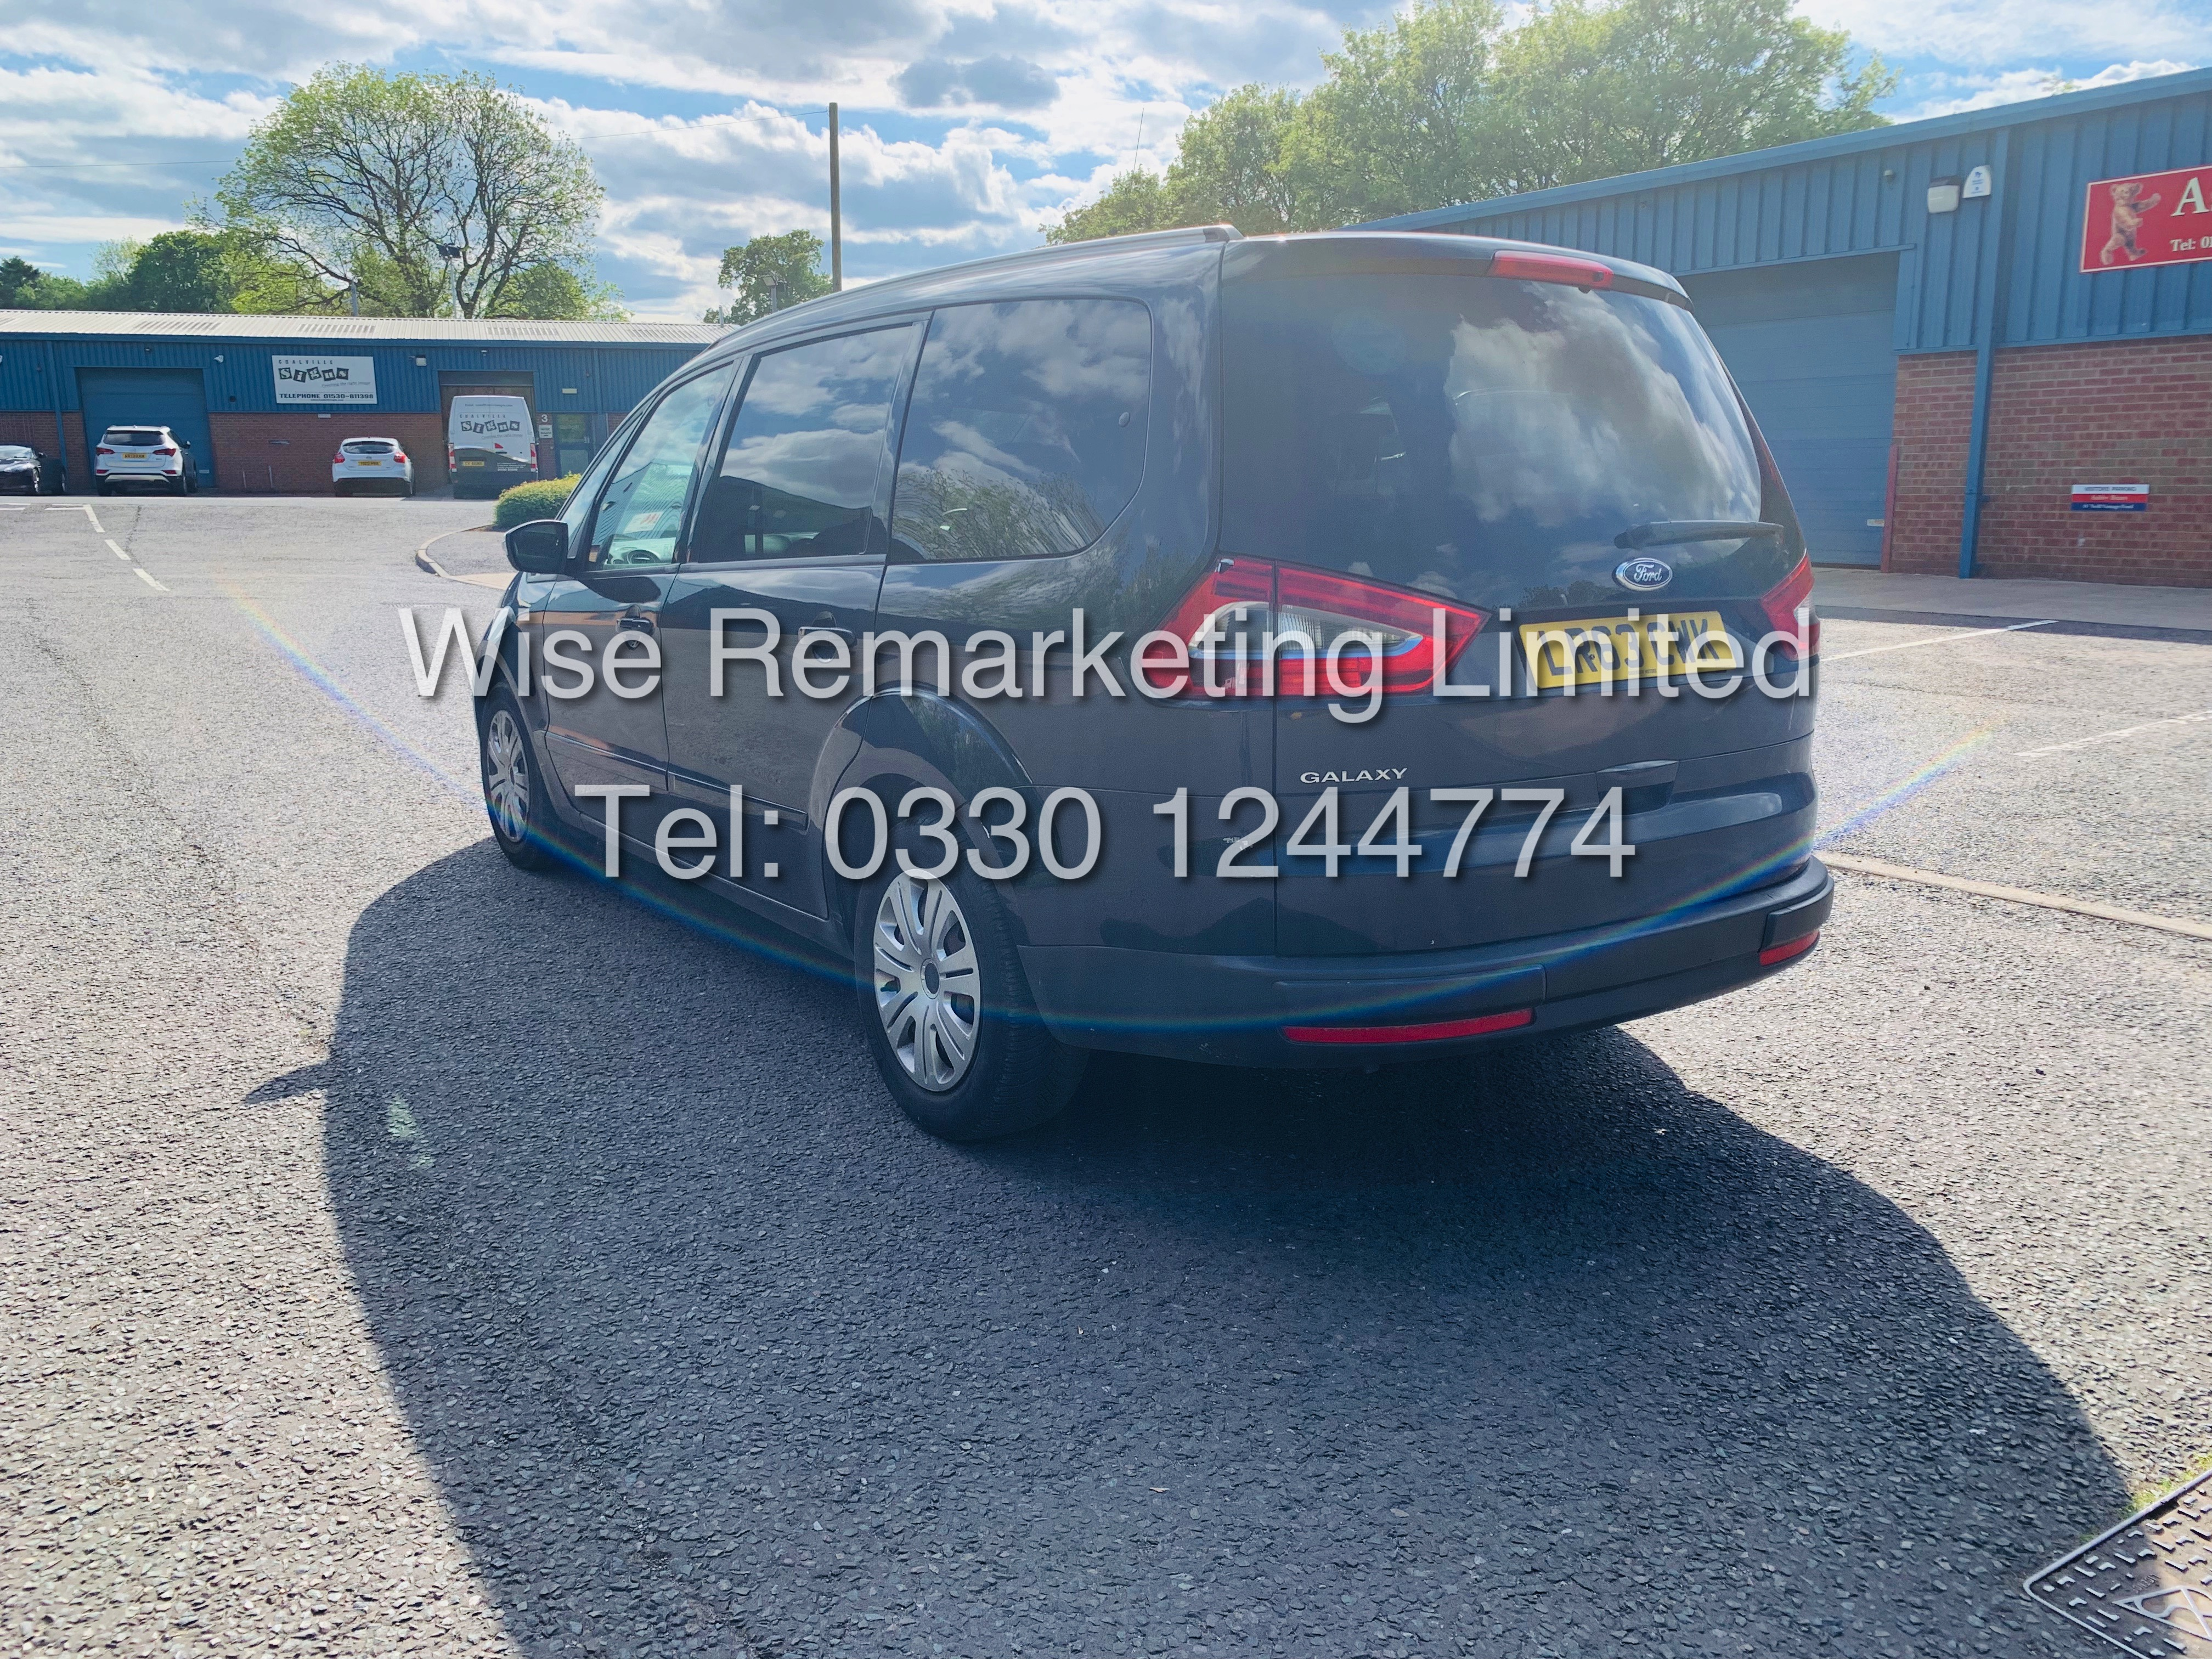 FORD GALAXY ZETEC 2.0L TDCI AUTO 7 SEATER MPV 63 REG *1 OWNER* - Image 6 of 18